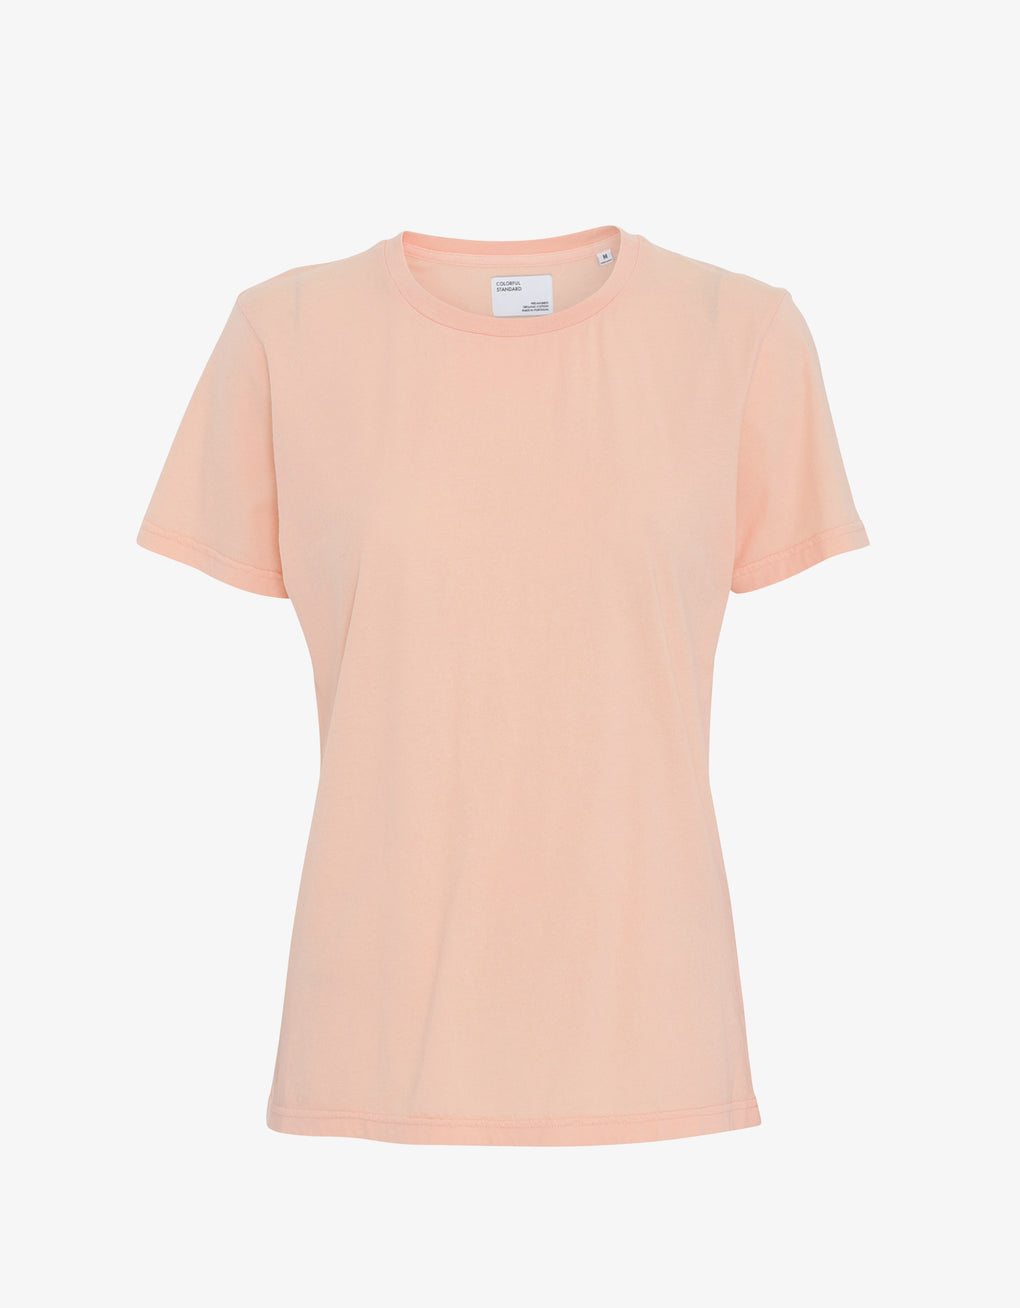 Colorful Standard Women Light Organic Tee Women T-shirt Paradise Peach